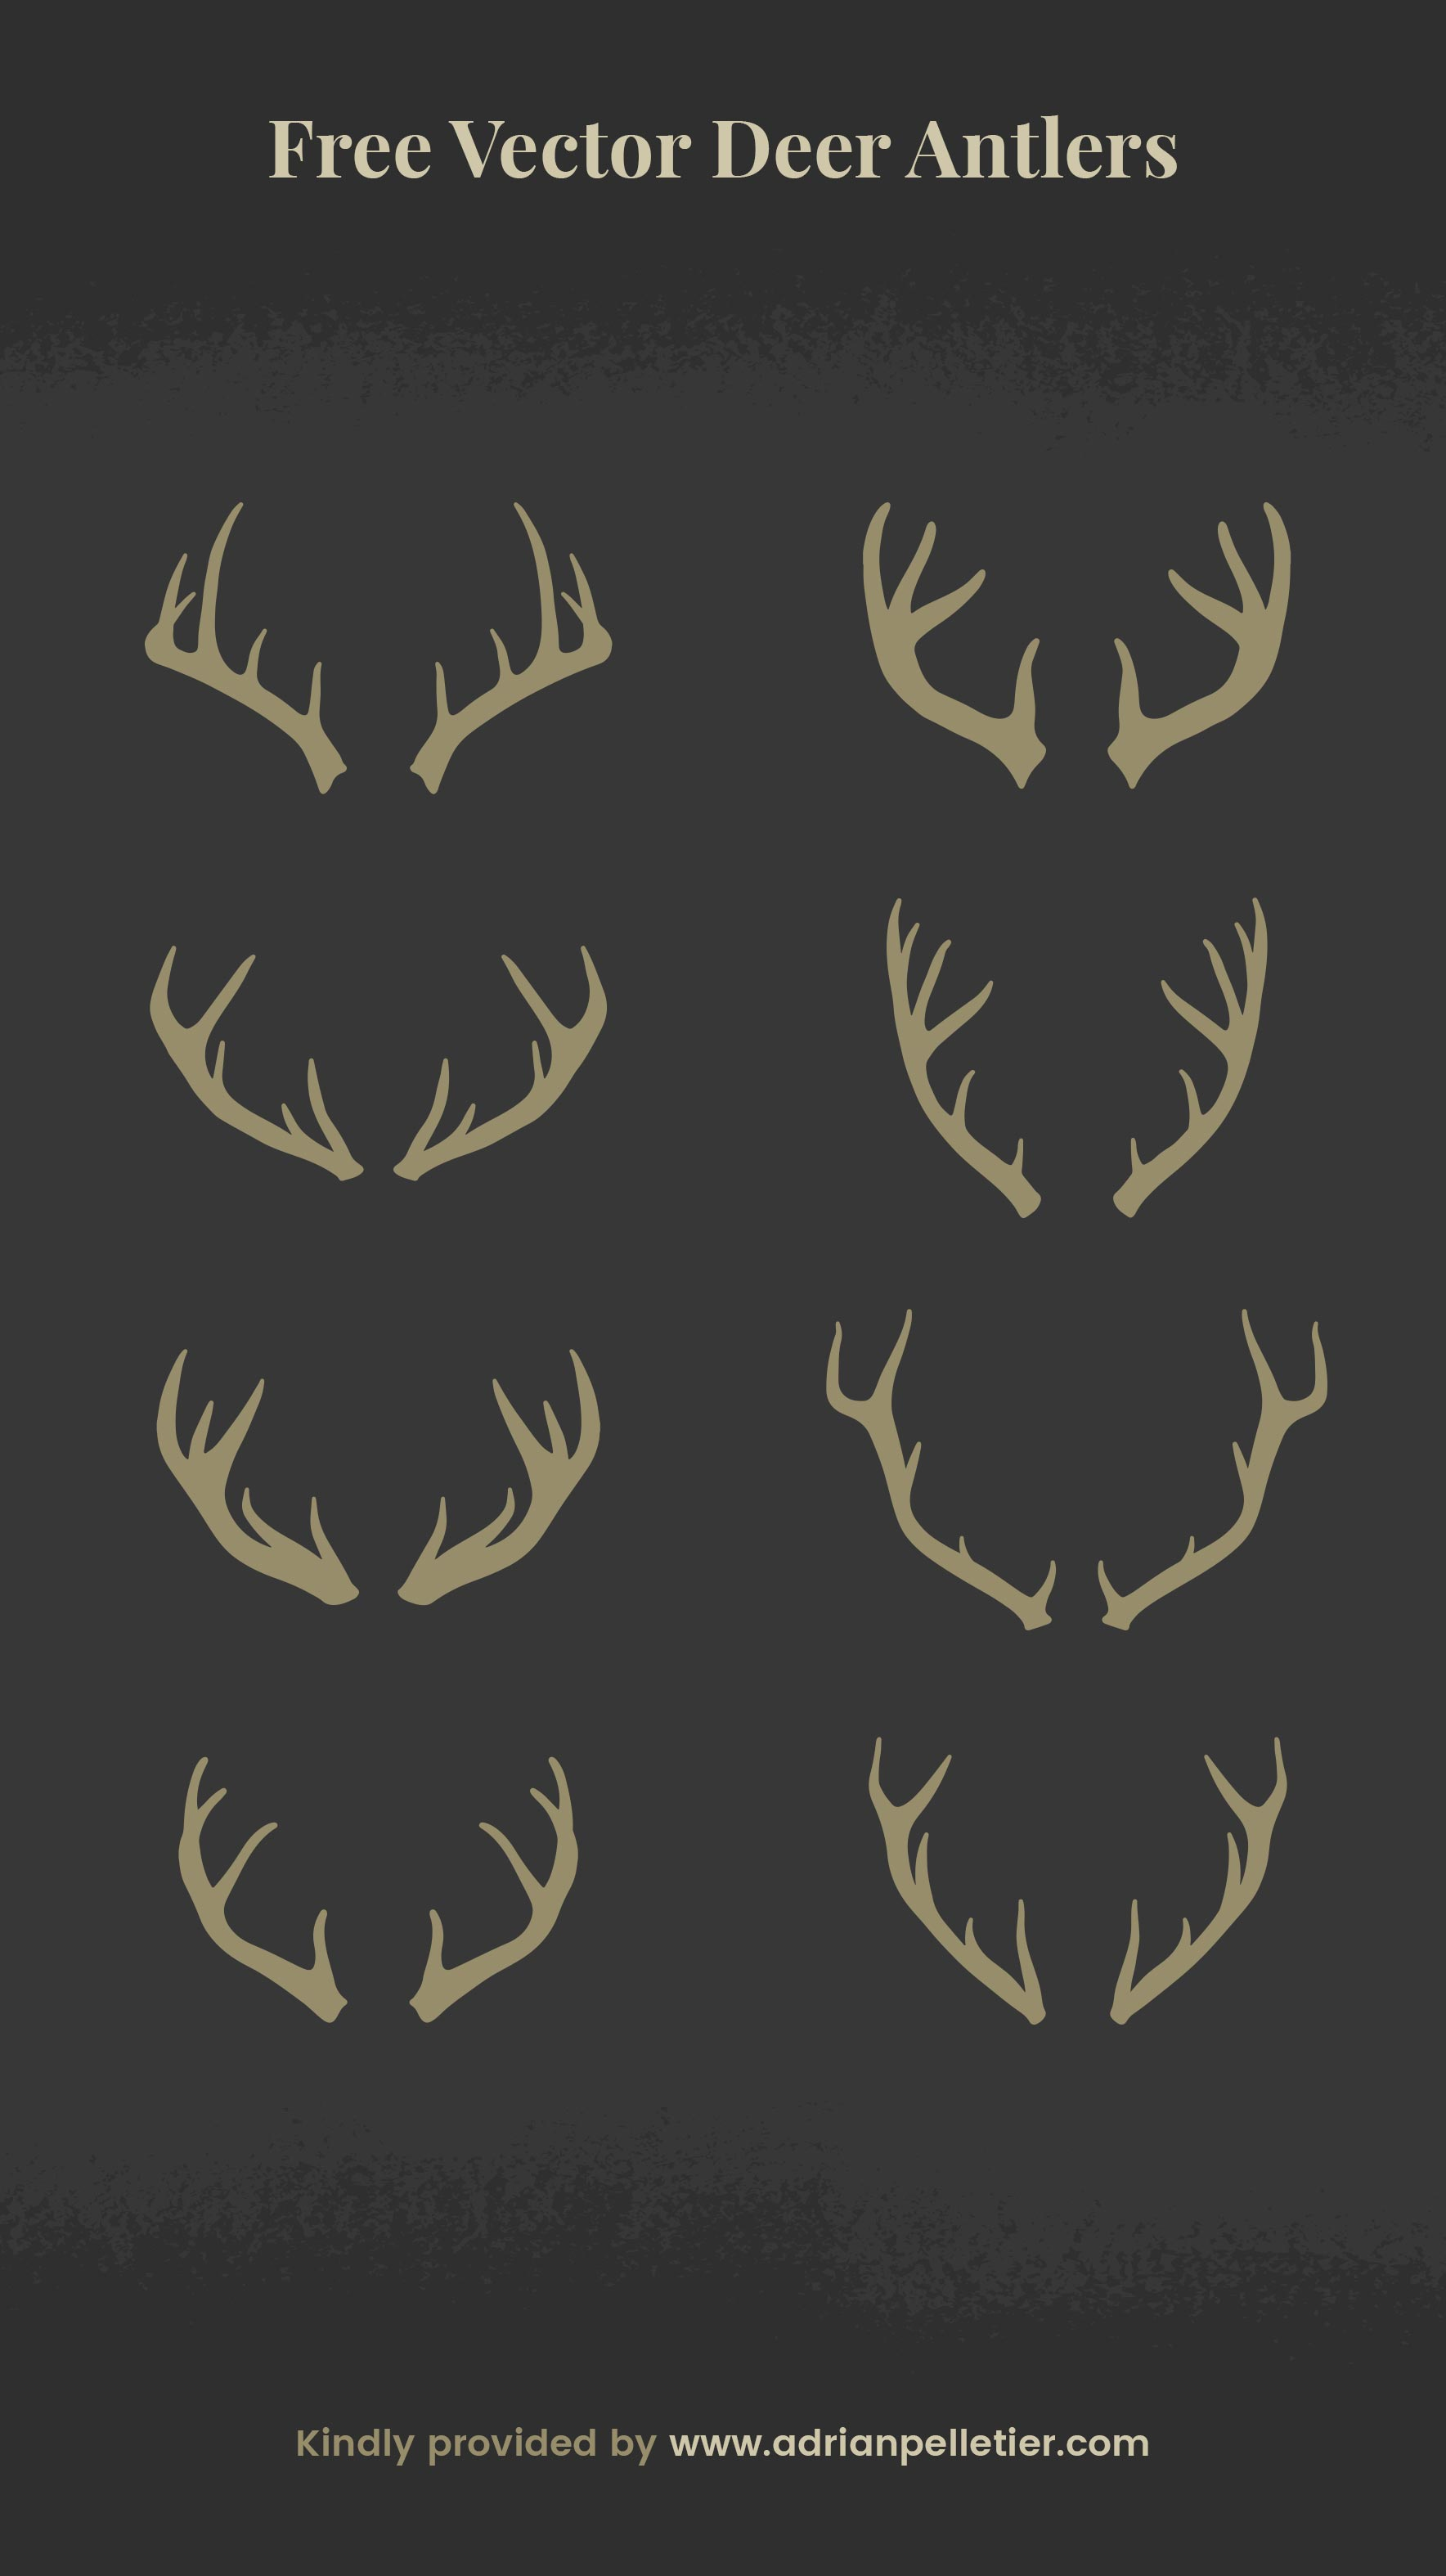 Free vector deer antlers by Adrian Pelletier